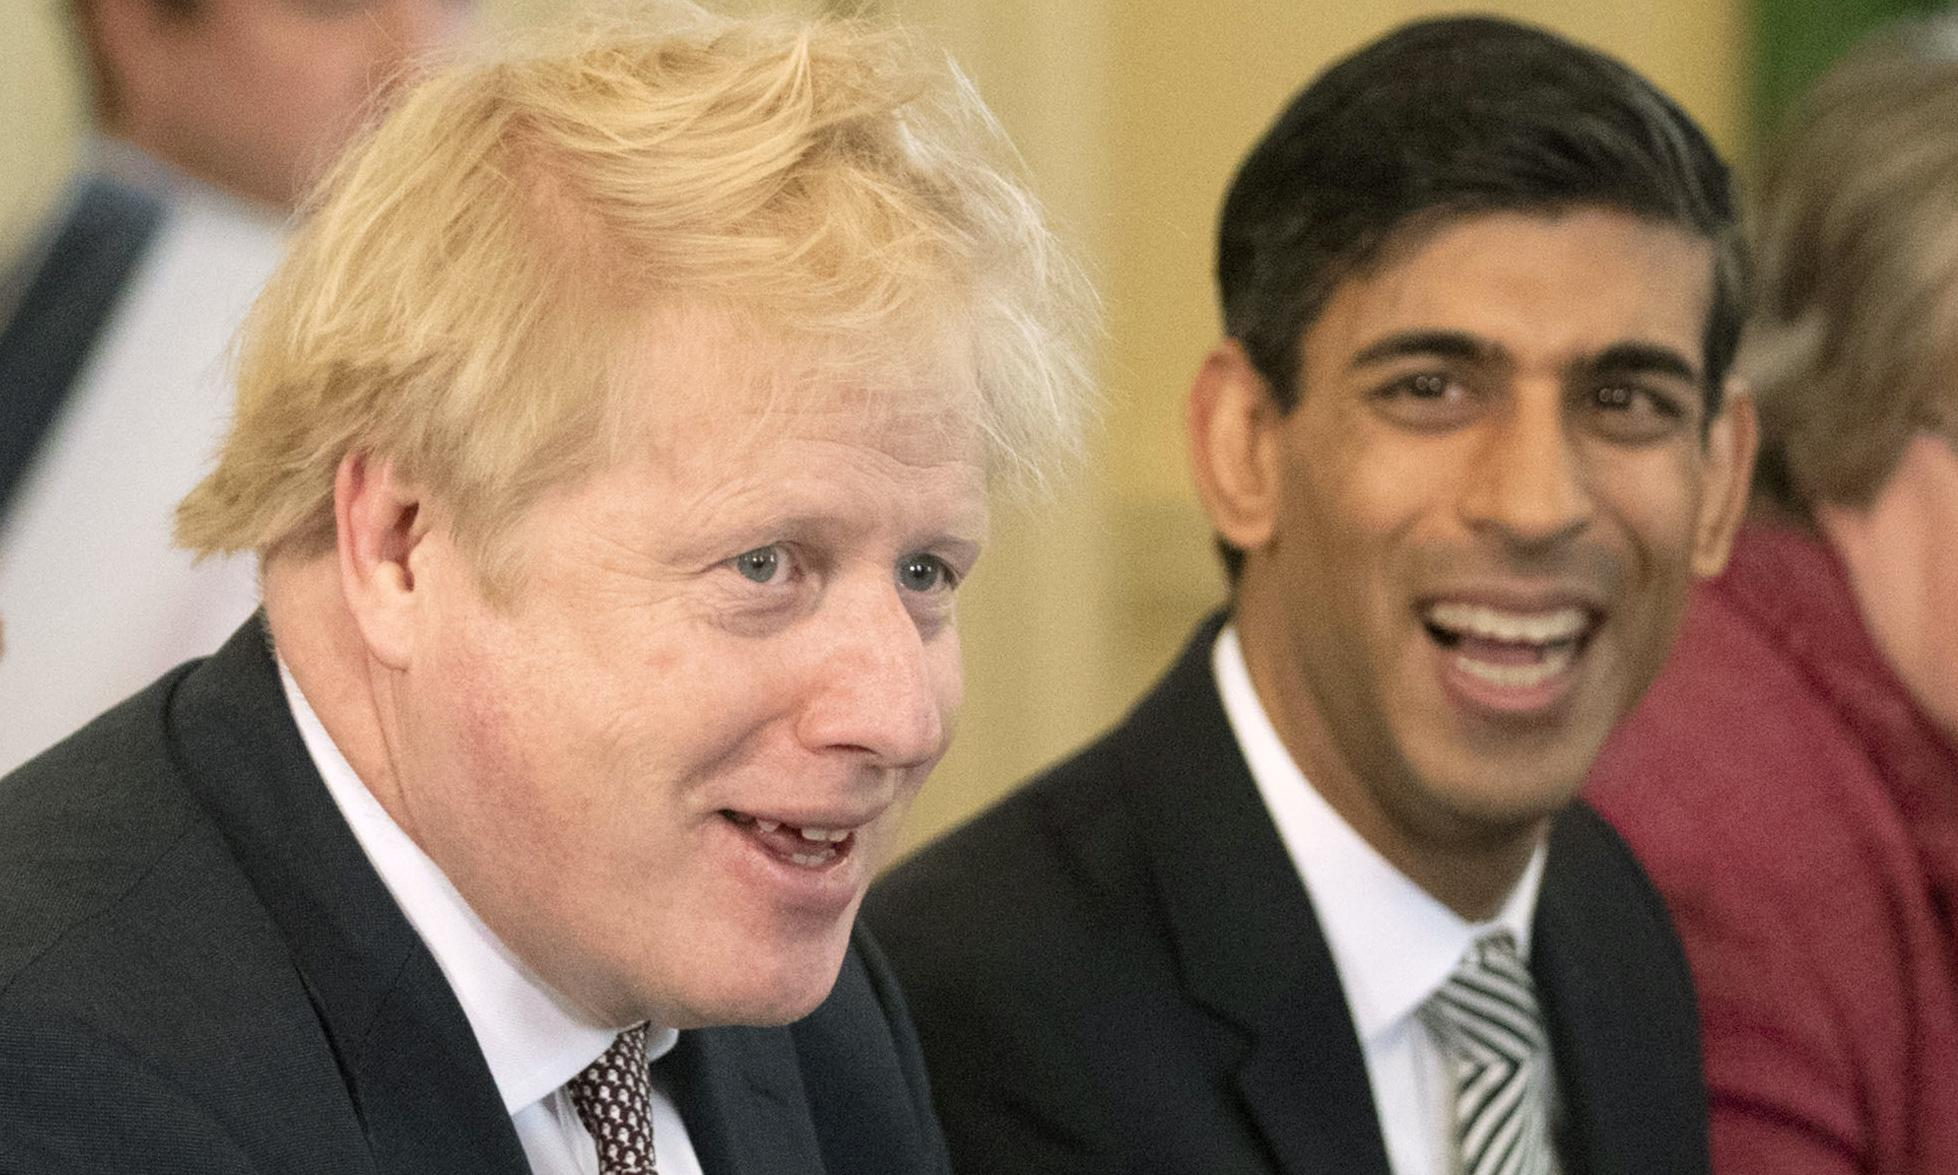 Rishi Sunak's impossible task: sticking to a plan Johnson doesn't have